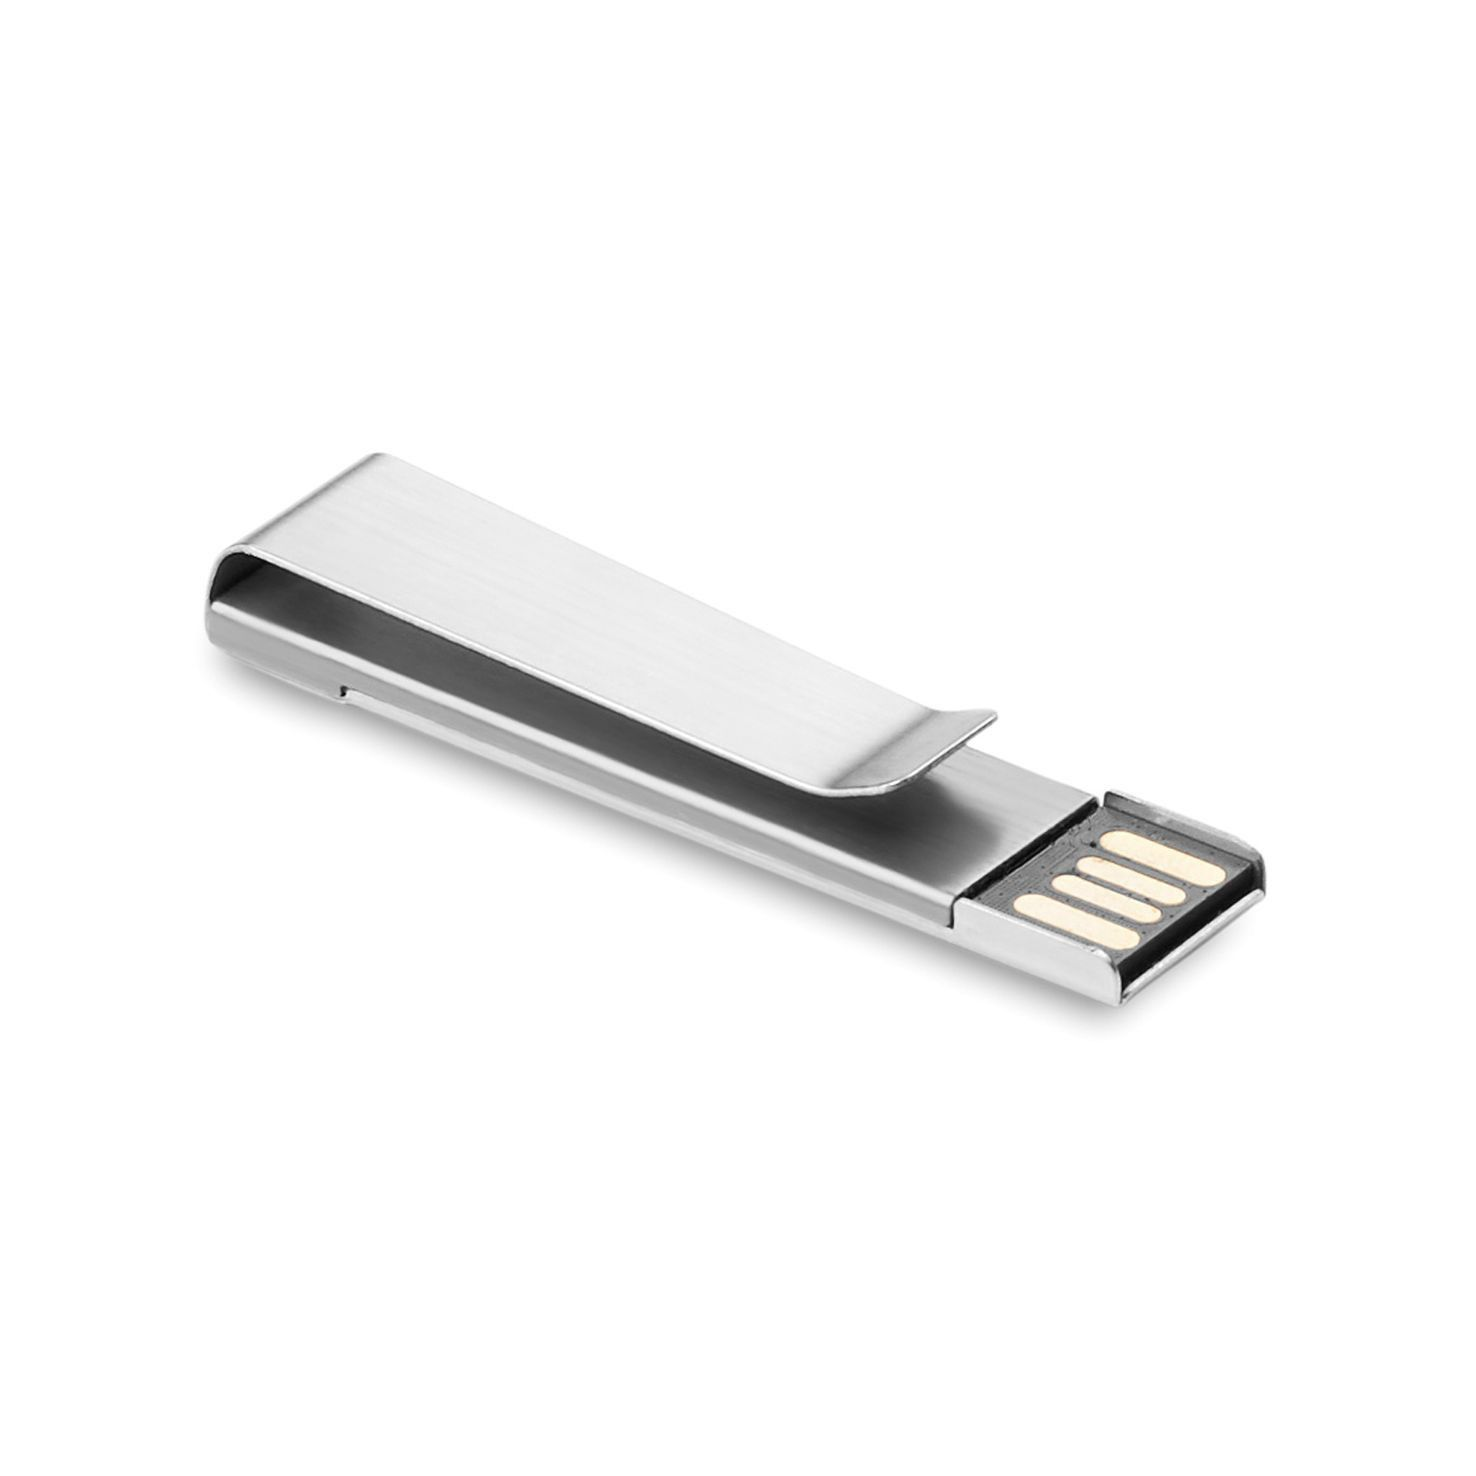 Zilvere USB stick | Metalen clip | 1GB